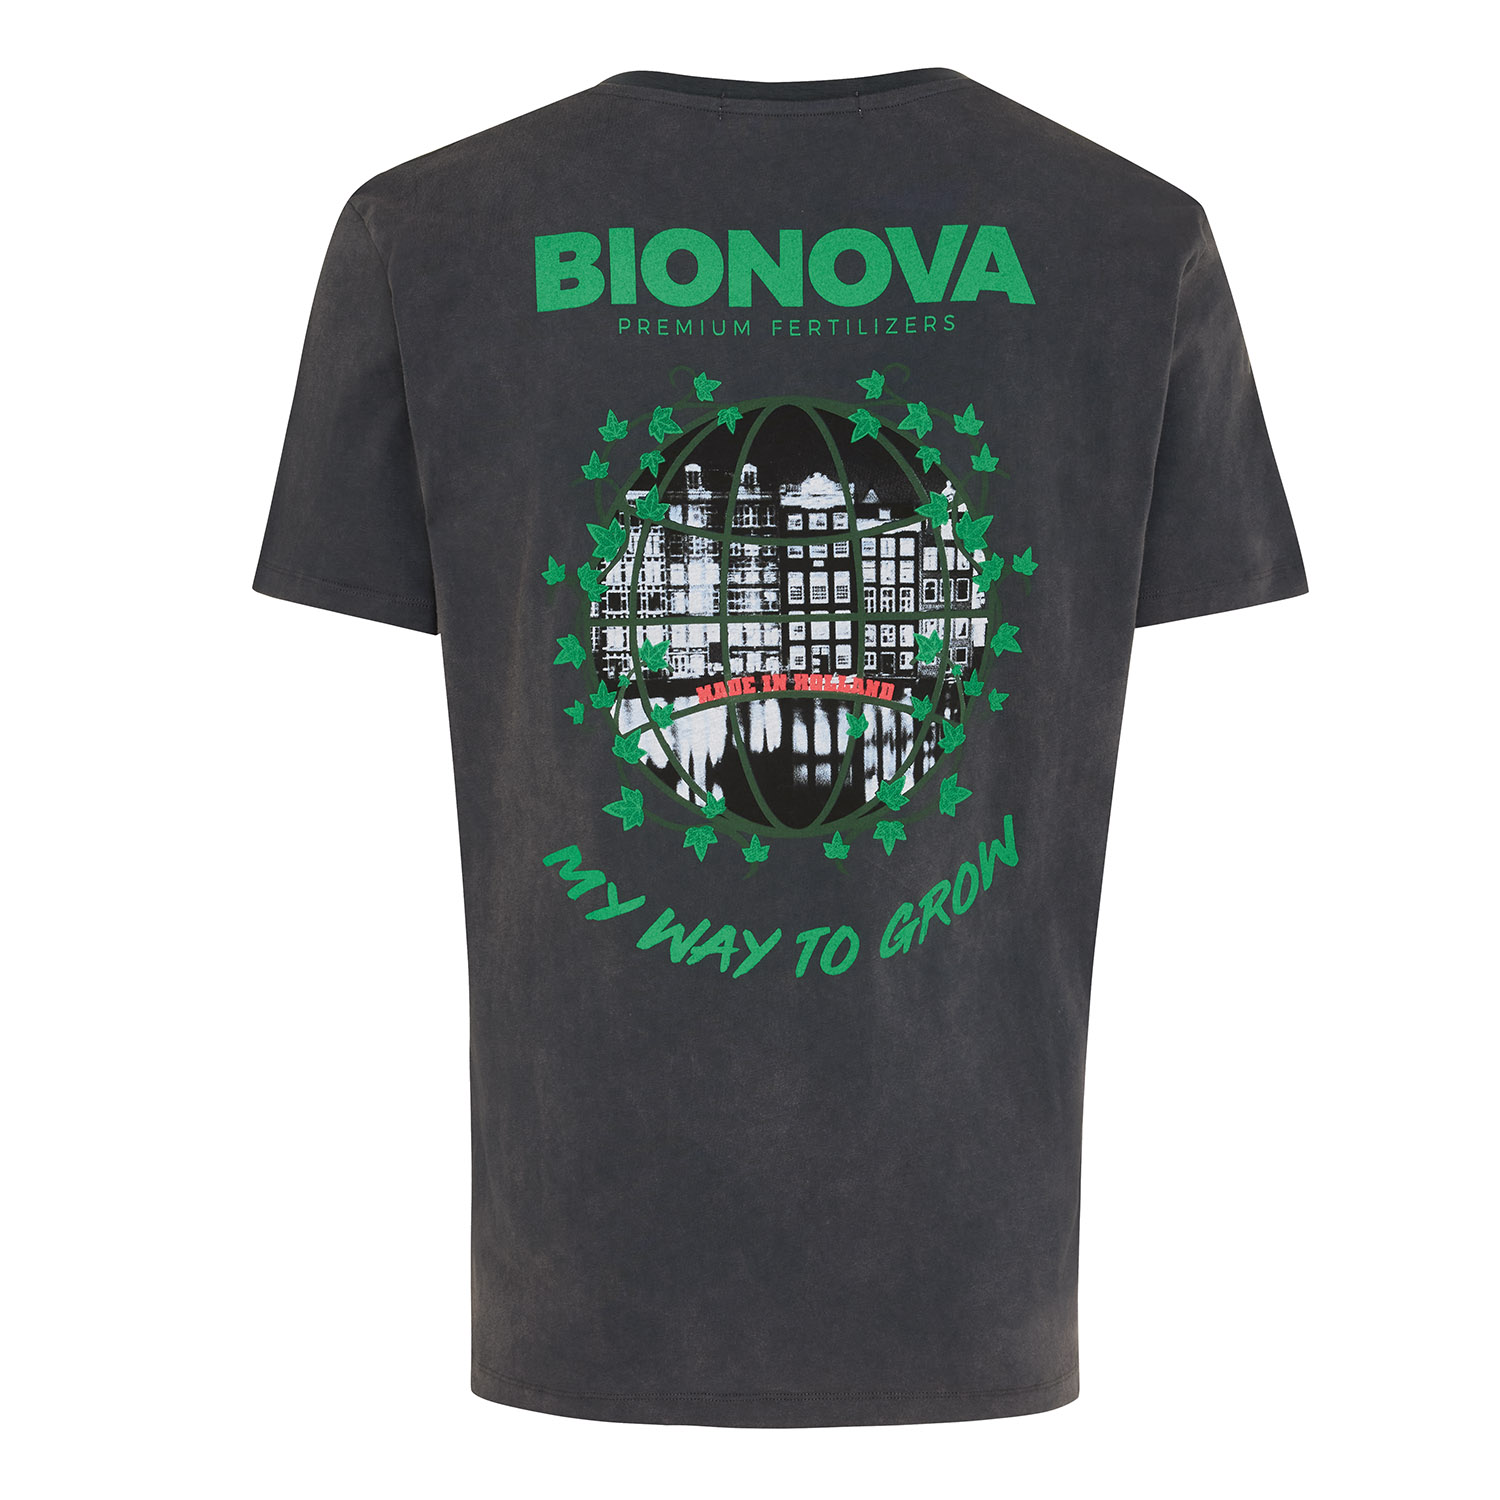 Bionova T-shirt | Black